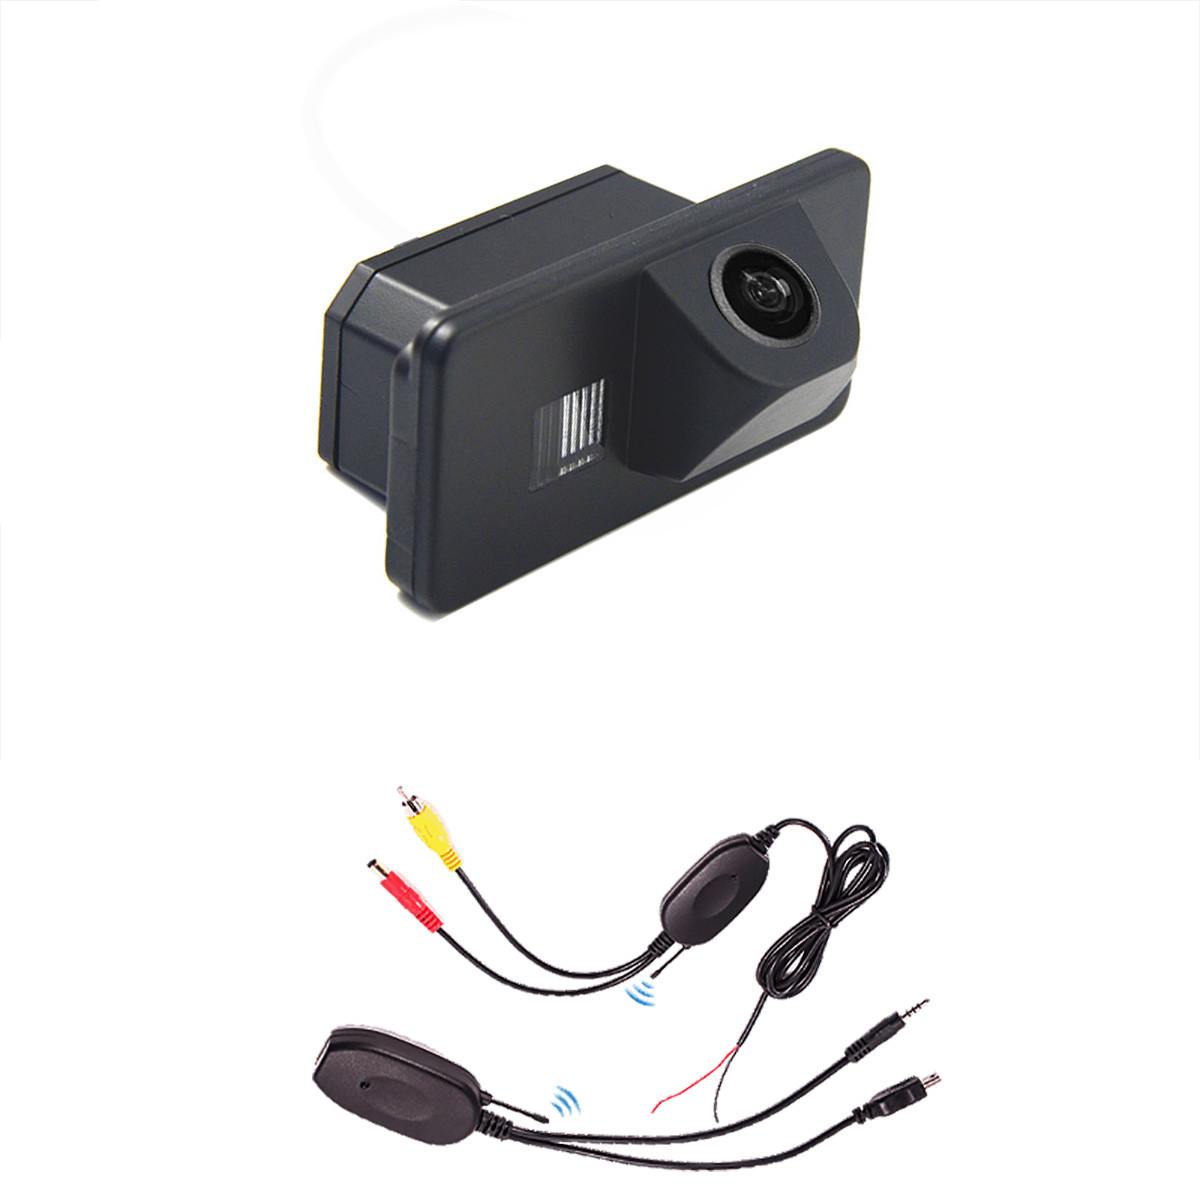 wireless car rear camera reaview reverse backup for BMW X3 X5 E81 E87 E90 E91 E60 E61 E63 E64 E70 E71 E39 paking assist